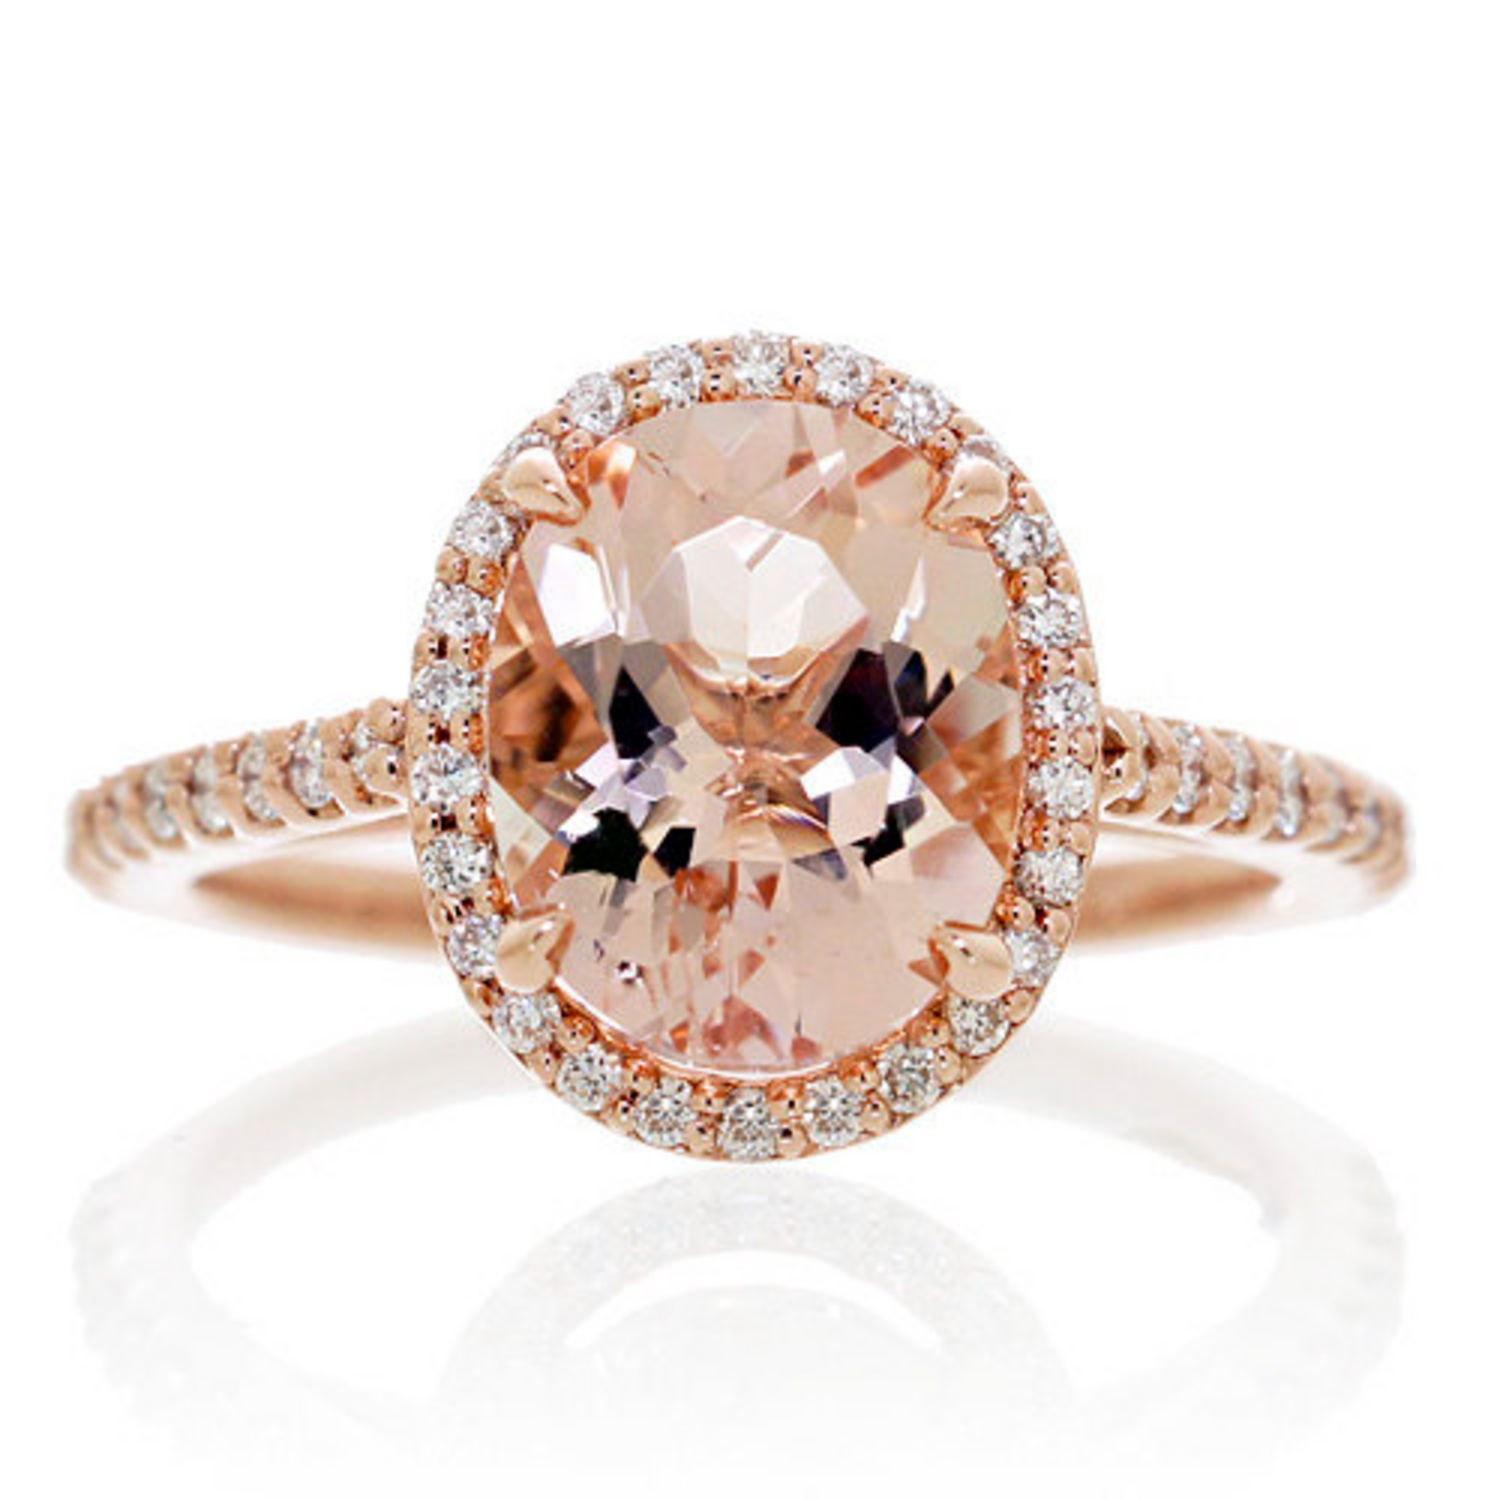 Buy Classy and Stylish Engagement Rings in Melbourne